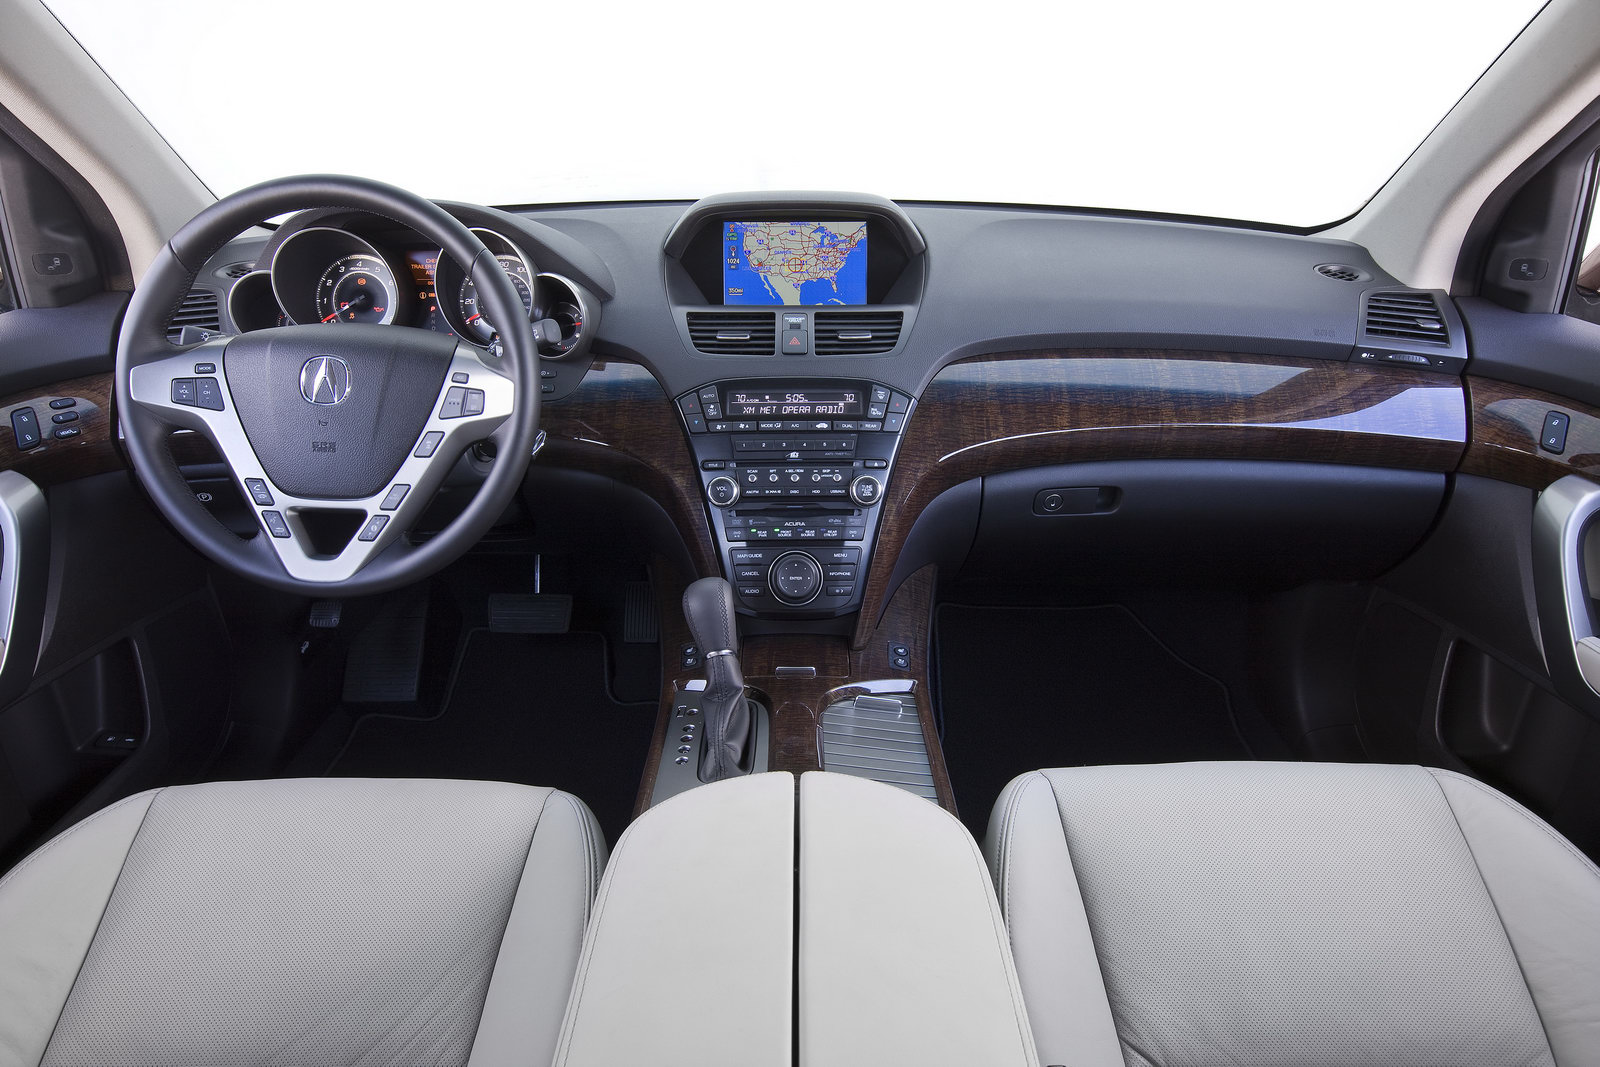 2010 Acura MDX 28 Mildly Facelifted 2010 Acura MDX Priced from $43,040 in the States